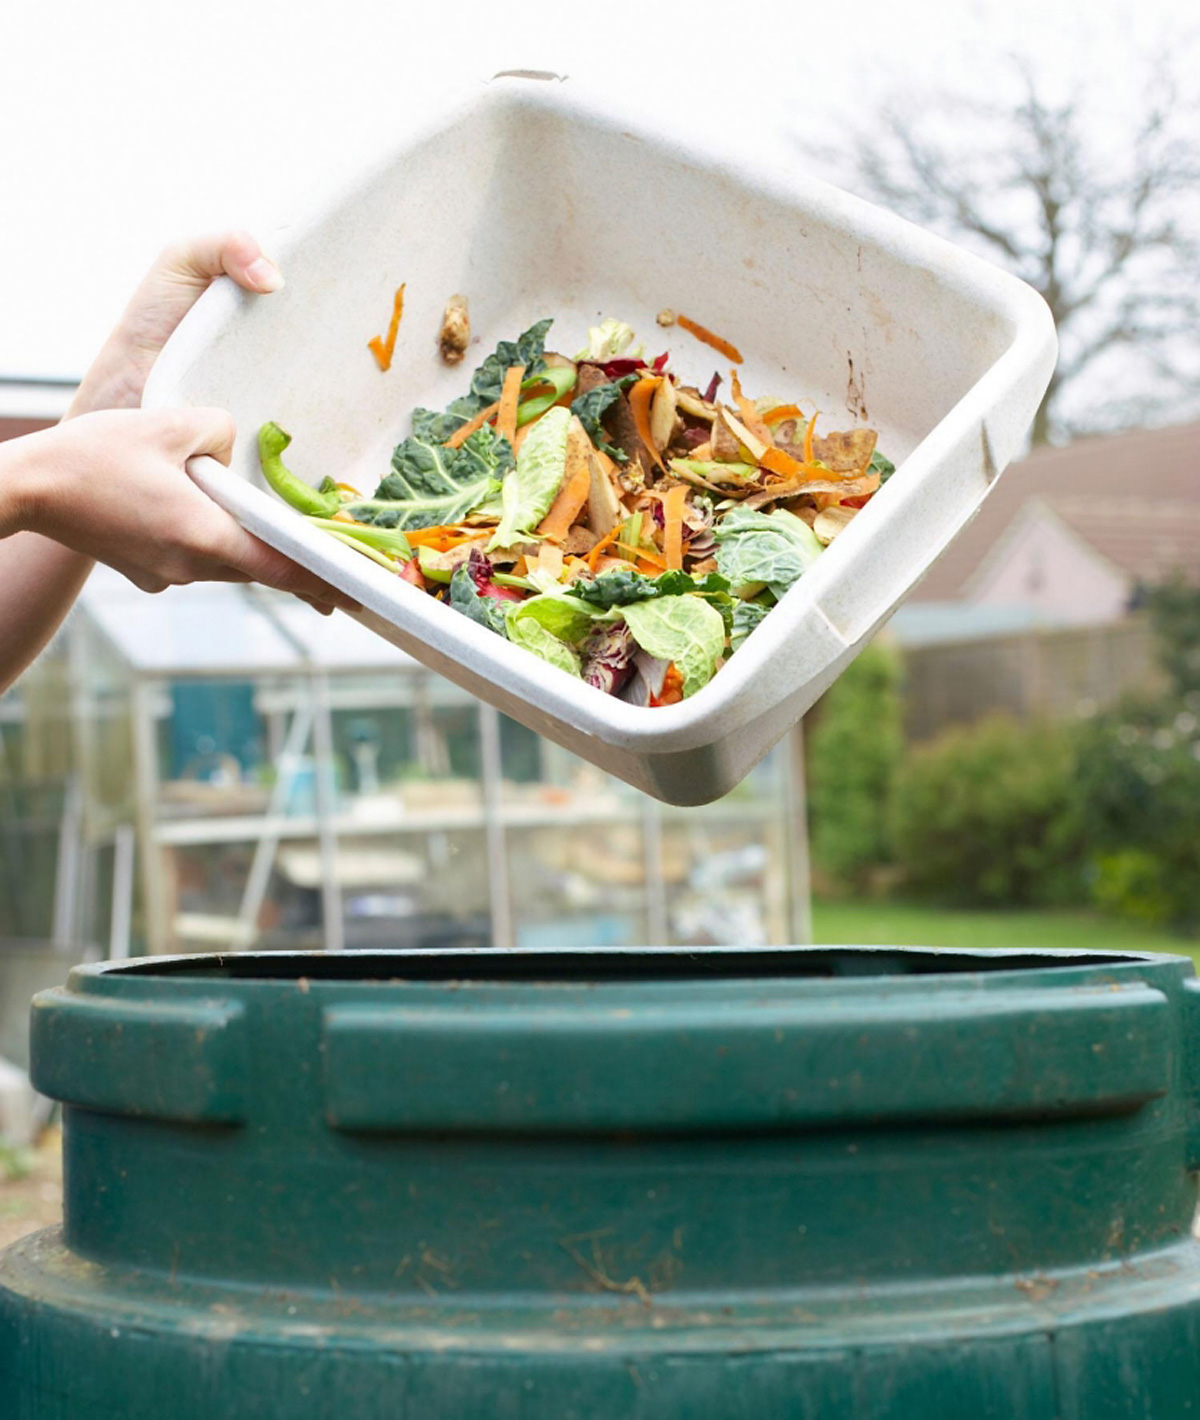 Waste Busters explain how to reduce food waste